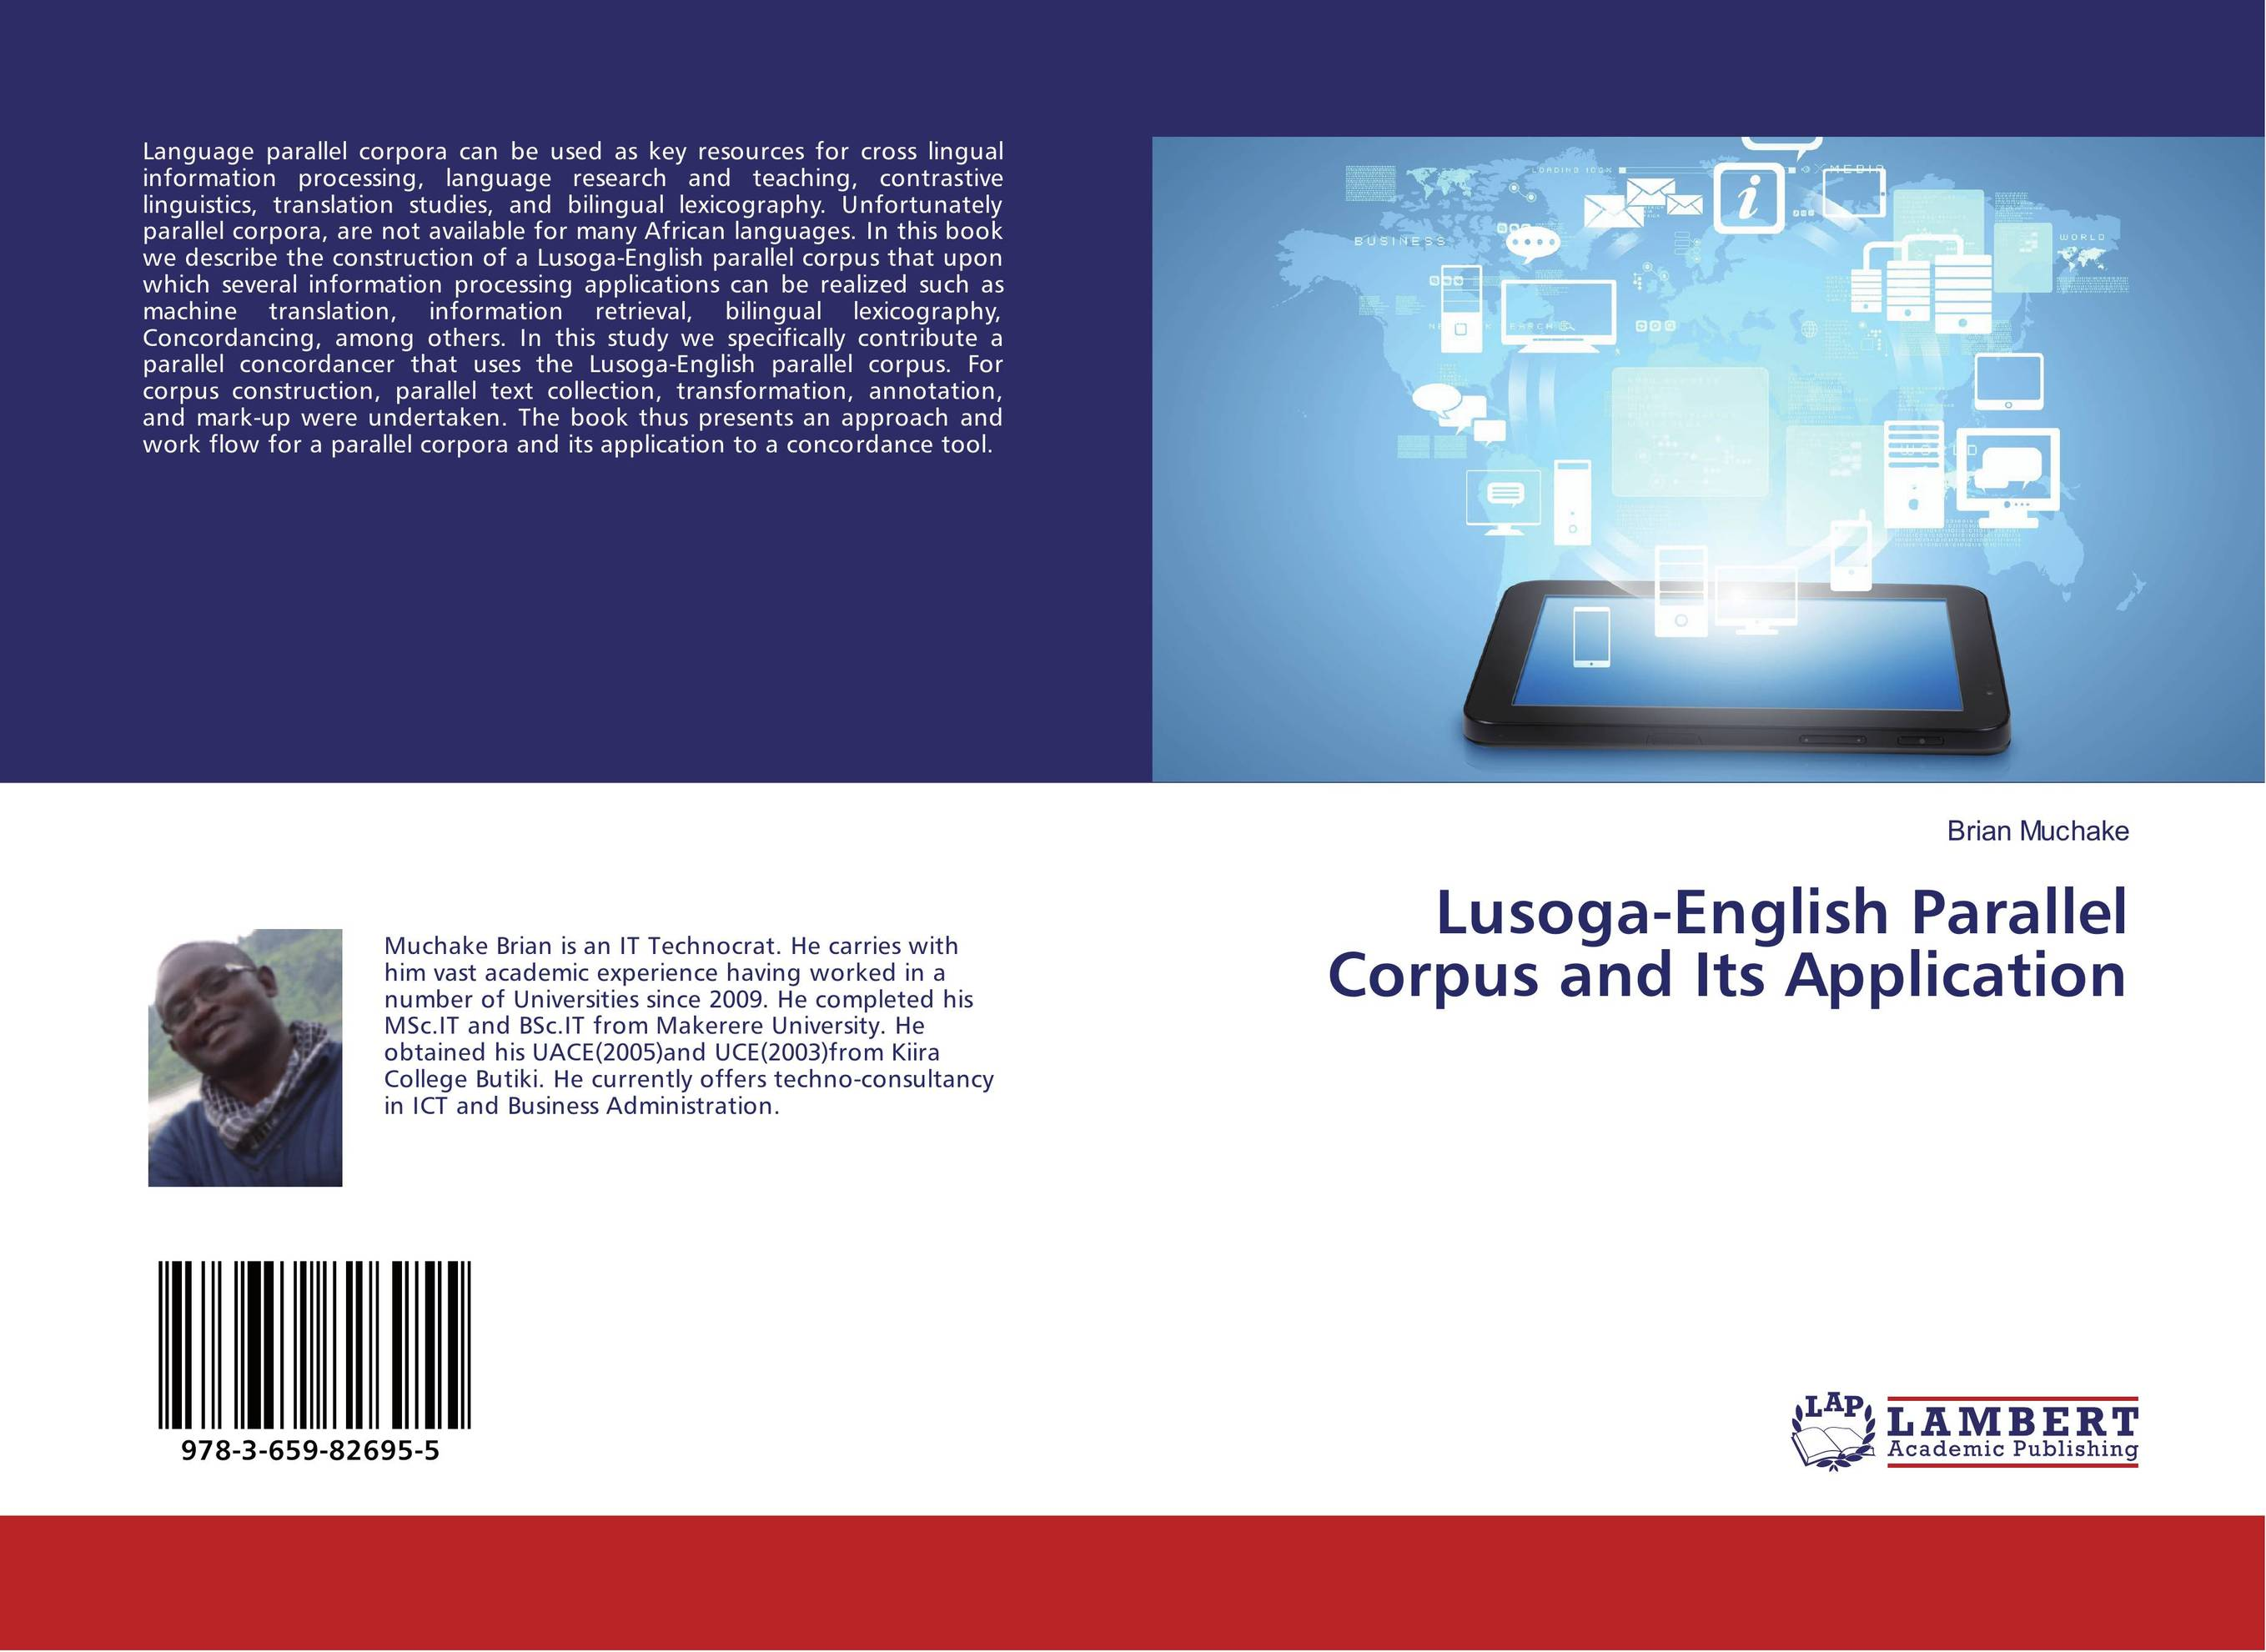 Lusoga-English Parallel Corpus and Its Application ноутбук hp 15 bs079ur 1vh74ea intel core i3 6006u 2 0 ghz 4096mb 1000gb dvd rw amd radeon 520 2048mb wi fi cam 15 6 1920x1080 dos